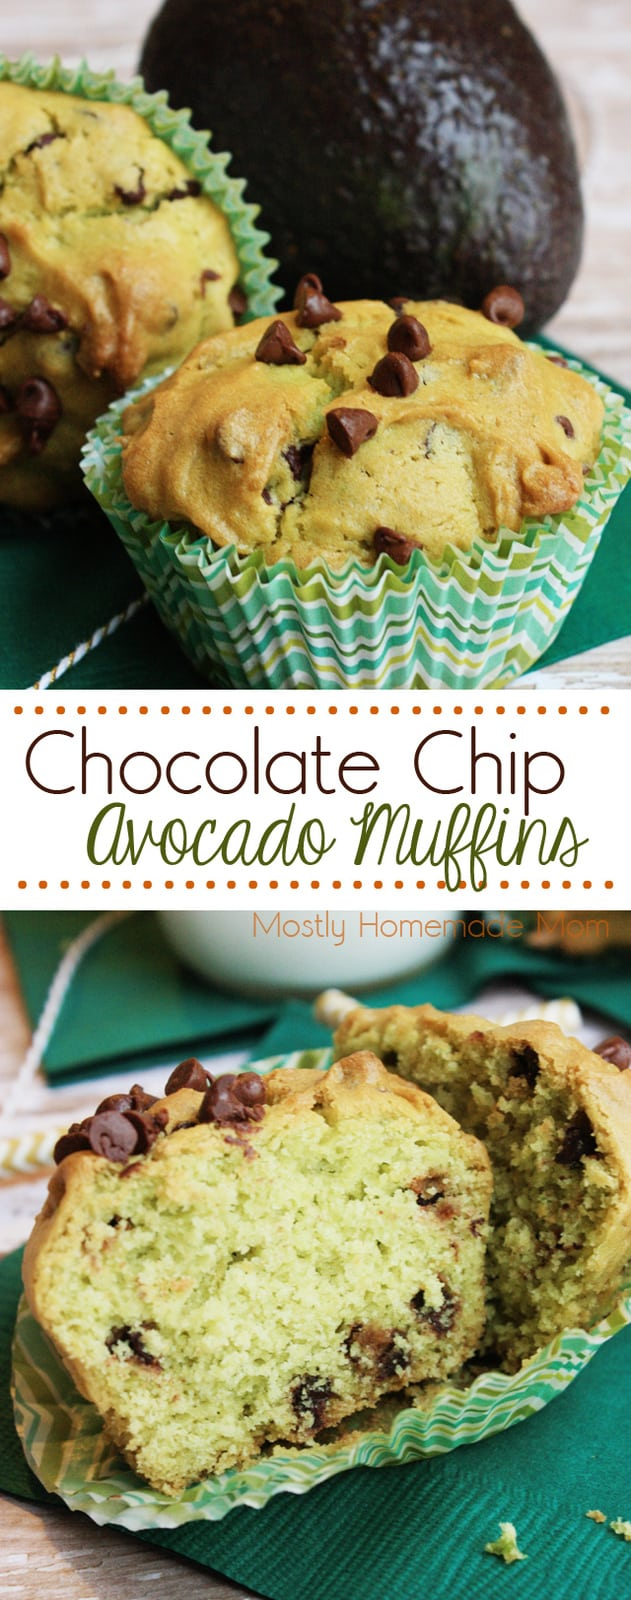 Chocolate Chip Avocado Muffins - made with fresh mashed avocados and mini chocolate chips are perfect in the morning with a cup of coffee!